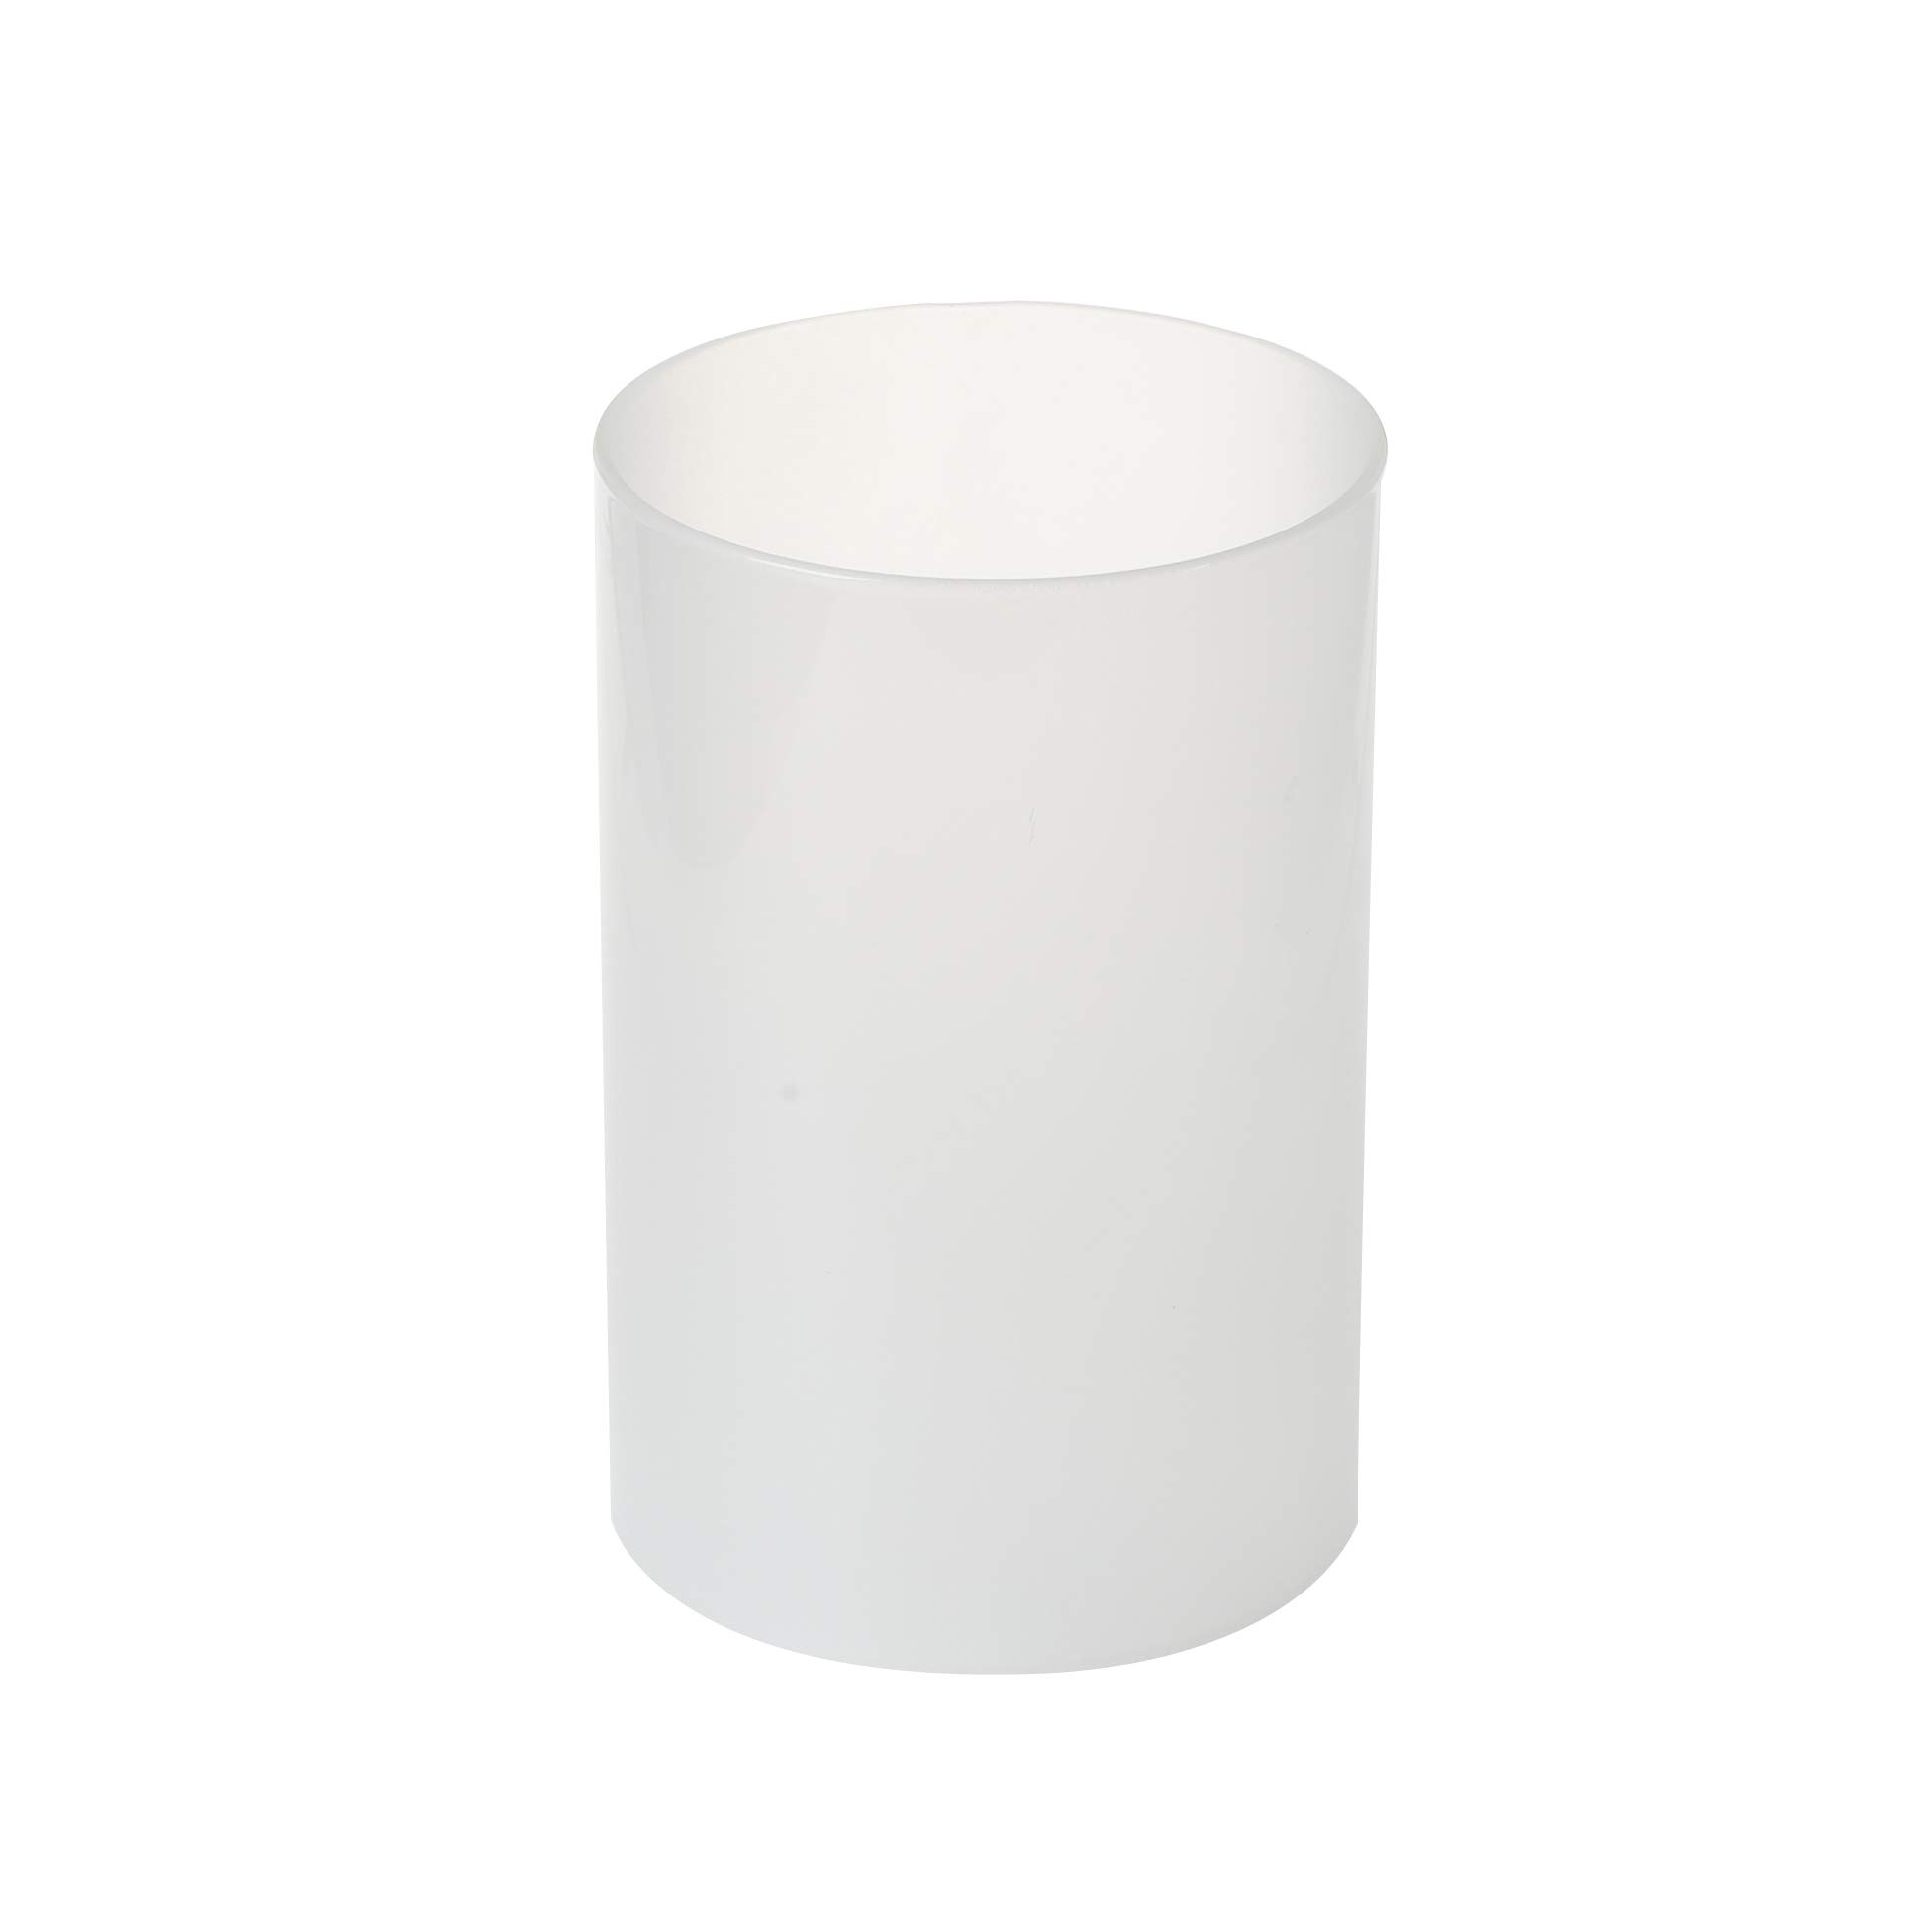 KICHI Various Size Frosted Glass Hurricane Candle Holders, Chimney Tube, Frosted Glass Cylinder Open Both Ends, Open Ended Hurricane, Frosted Lamp Shade for 8'' x 18'' Multiple Specifications